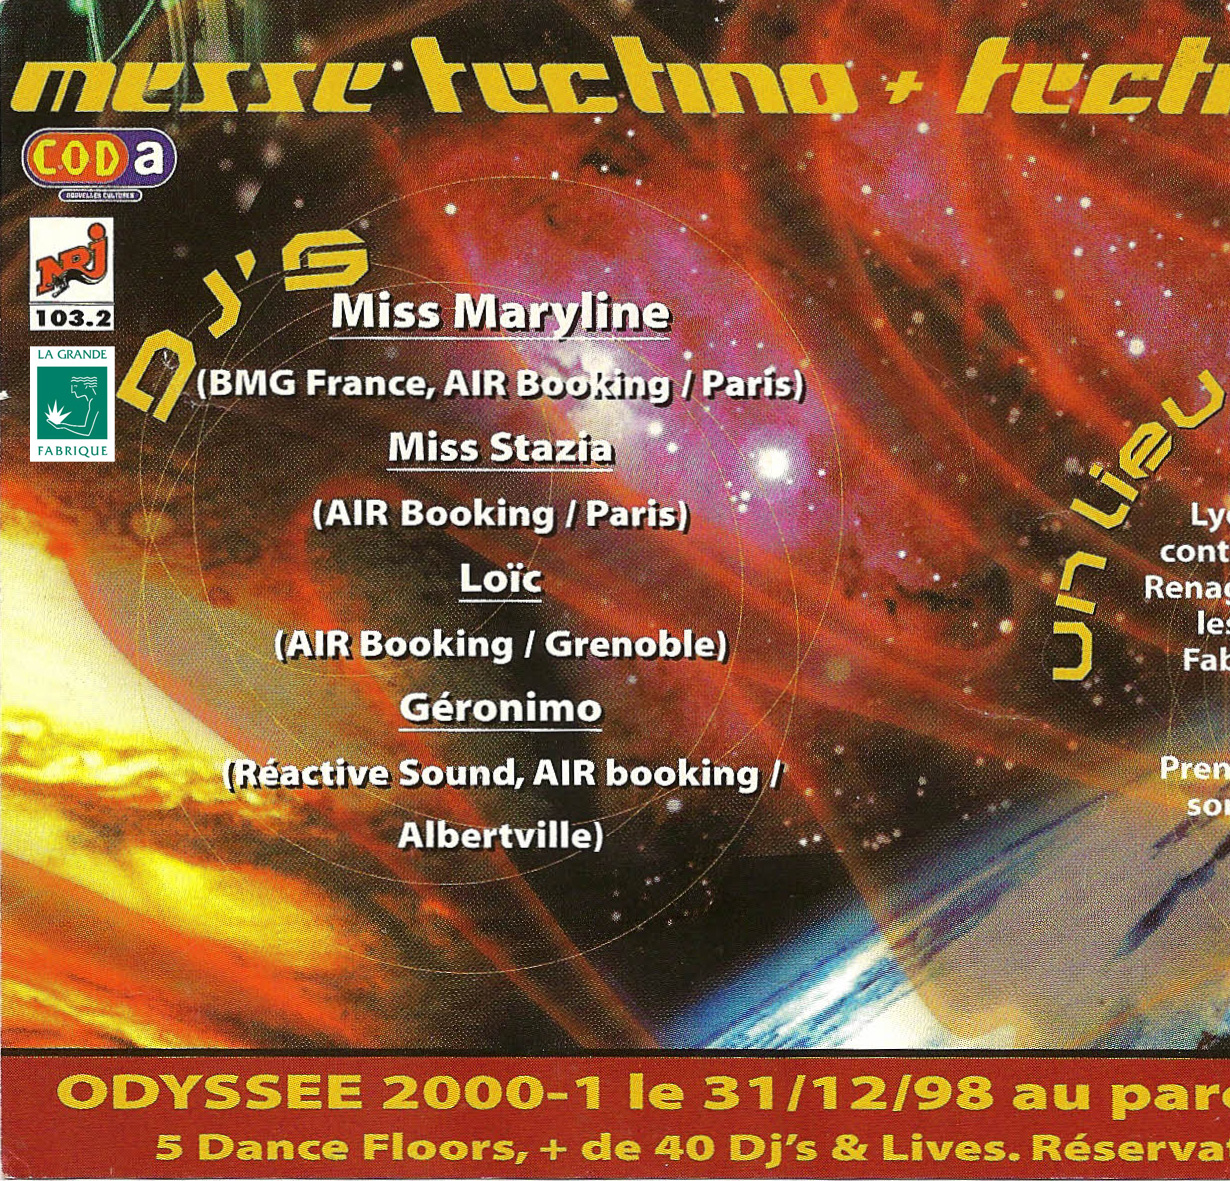 Messe techno 1998-1